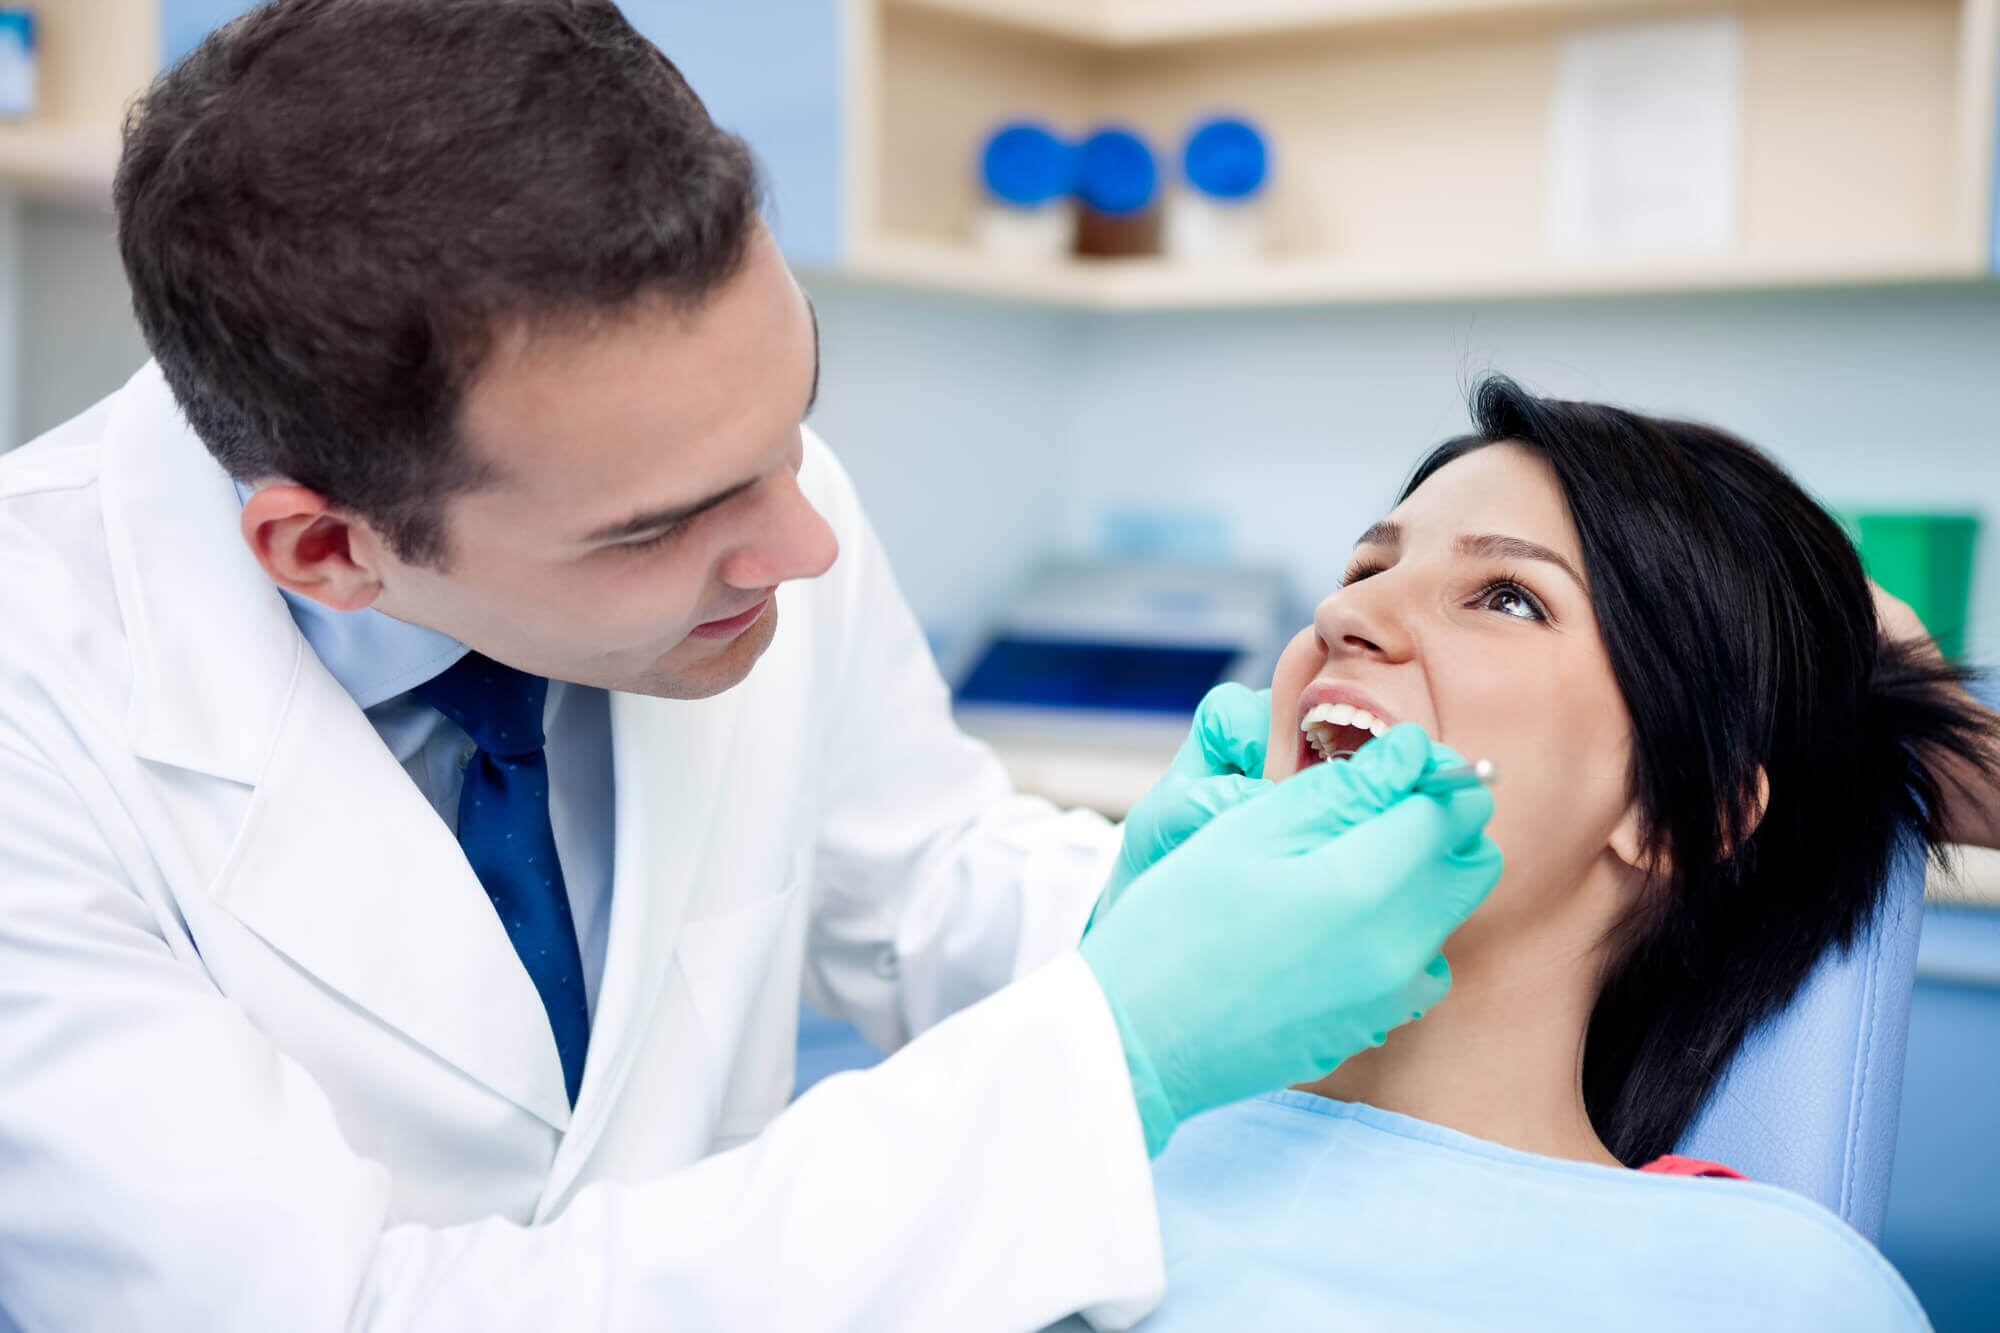 where can i find an endodontist in north miami?